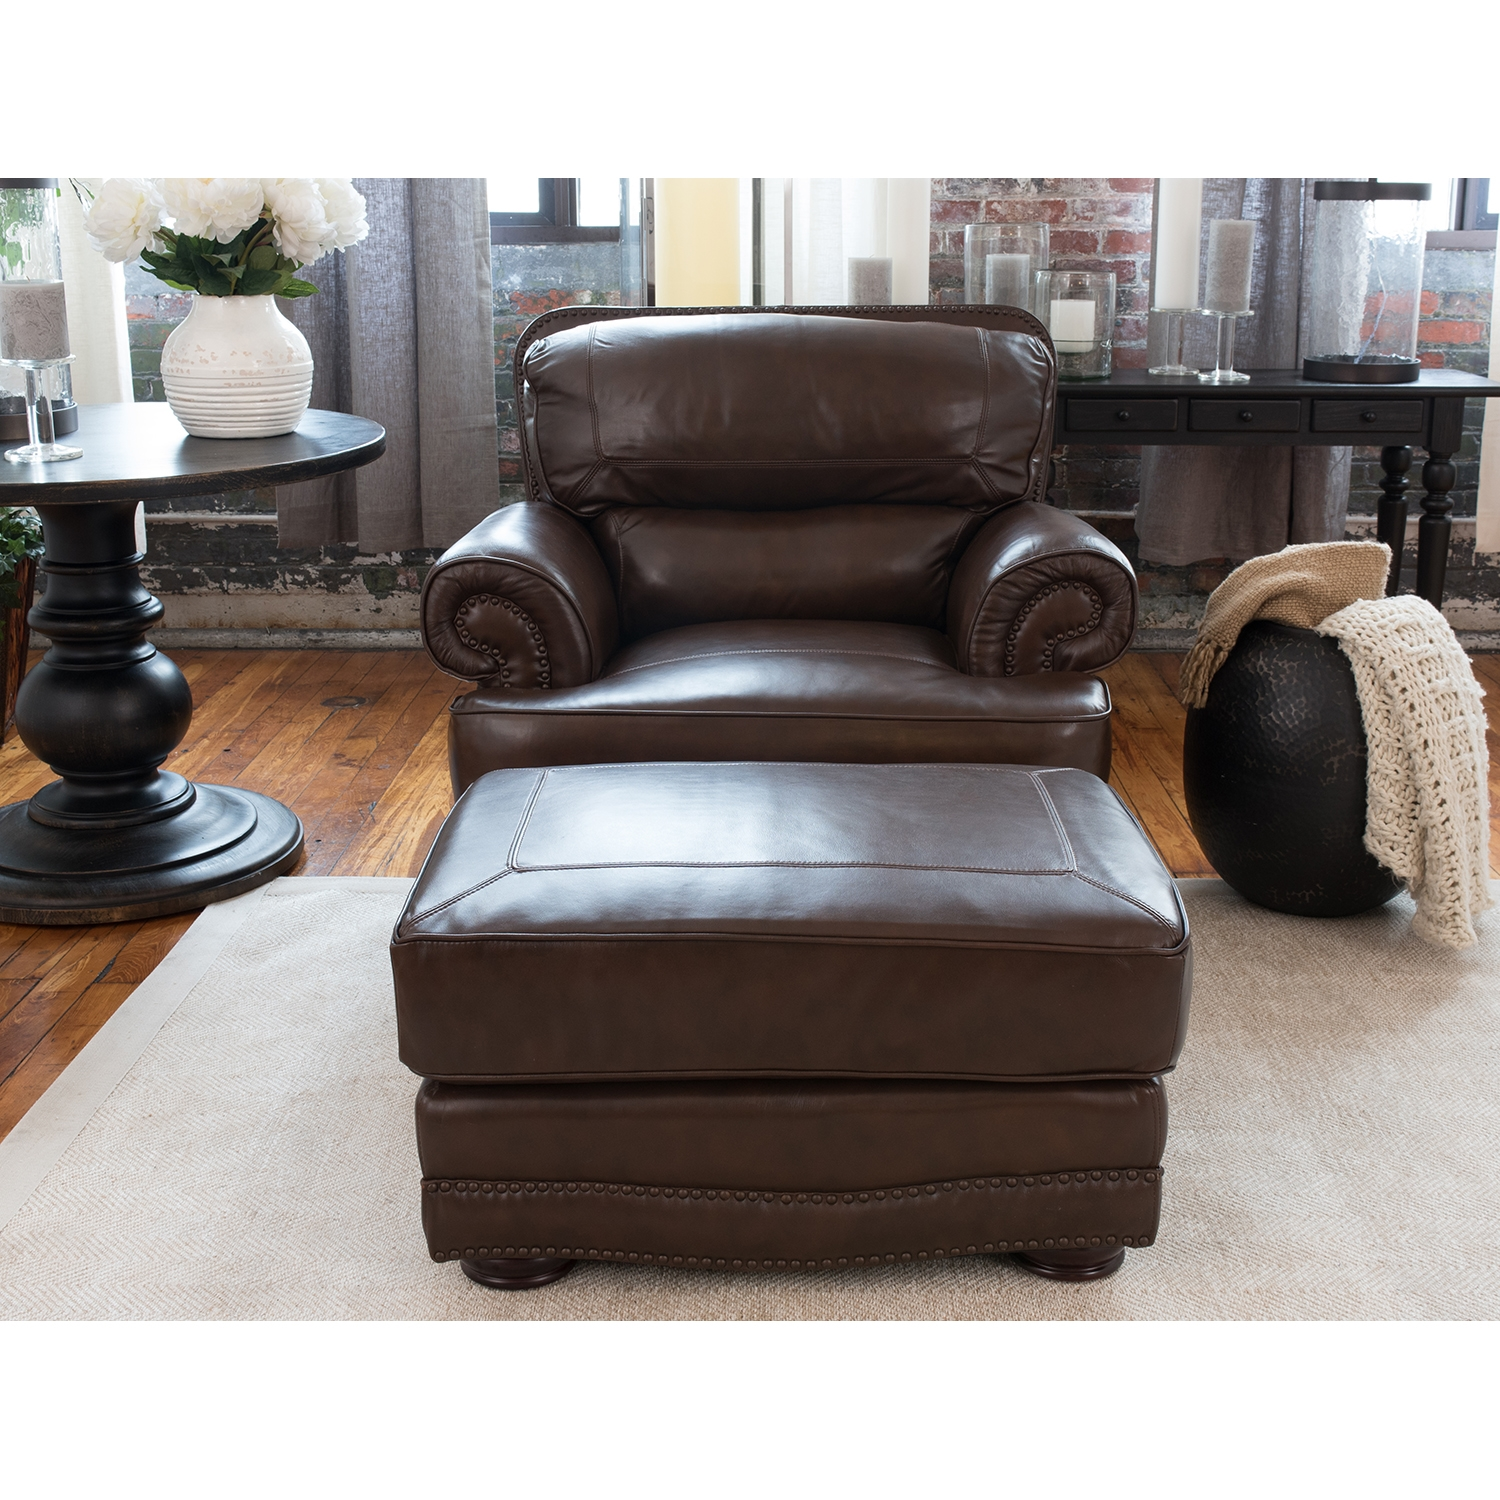 Charleston 2 Pieces Top Grain Leather Chair and Ottoman - Toast - ELE-CHR-2PC-SC-SO-TOAS-1